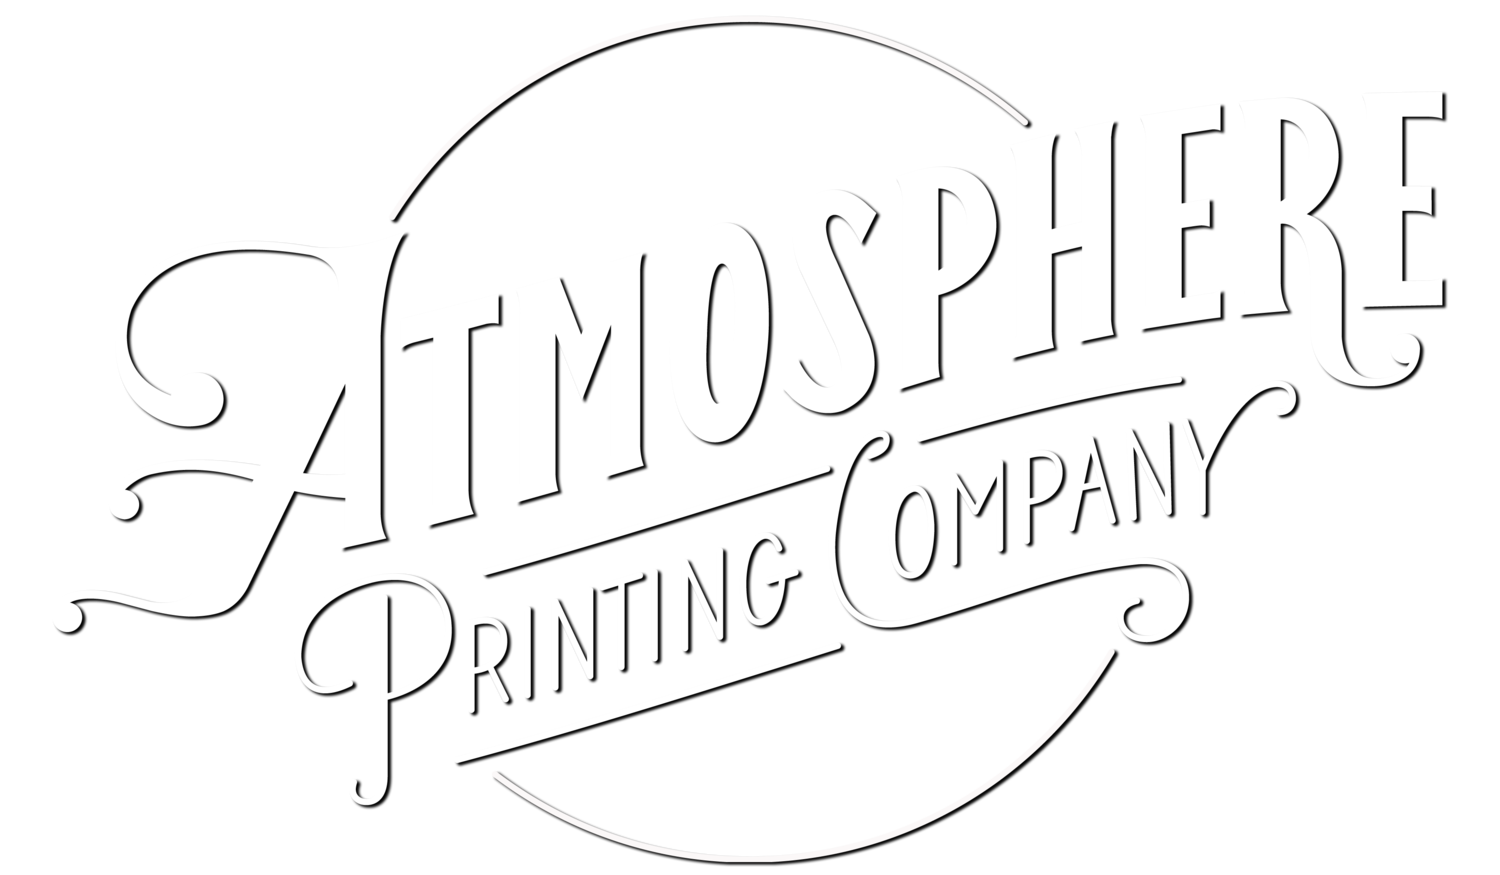 Atmosphere Printing Company